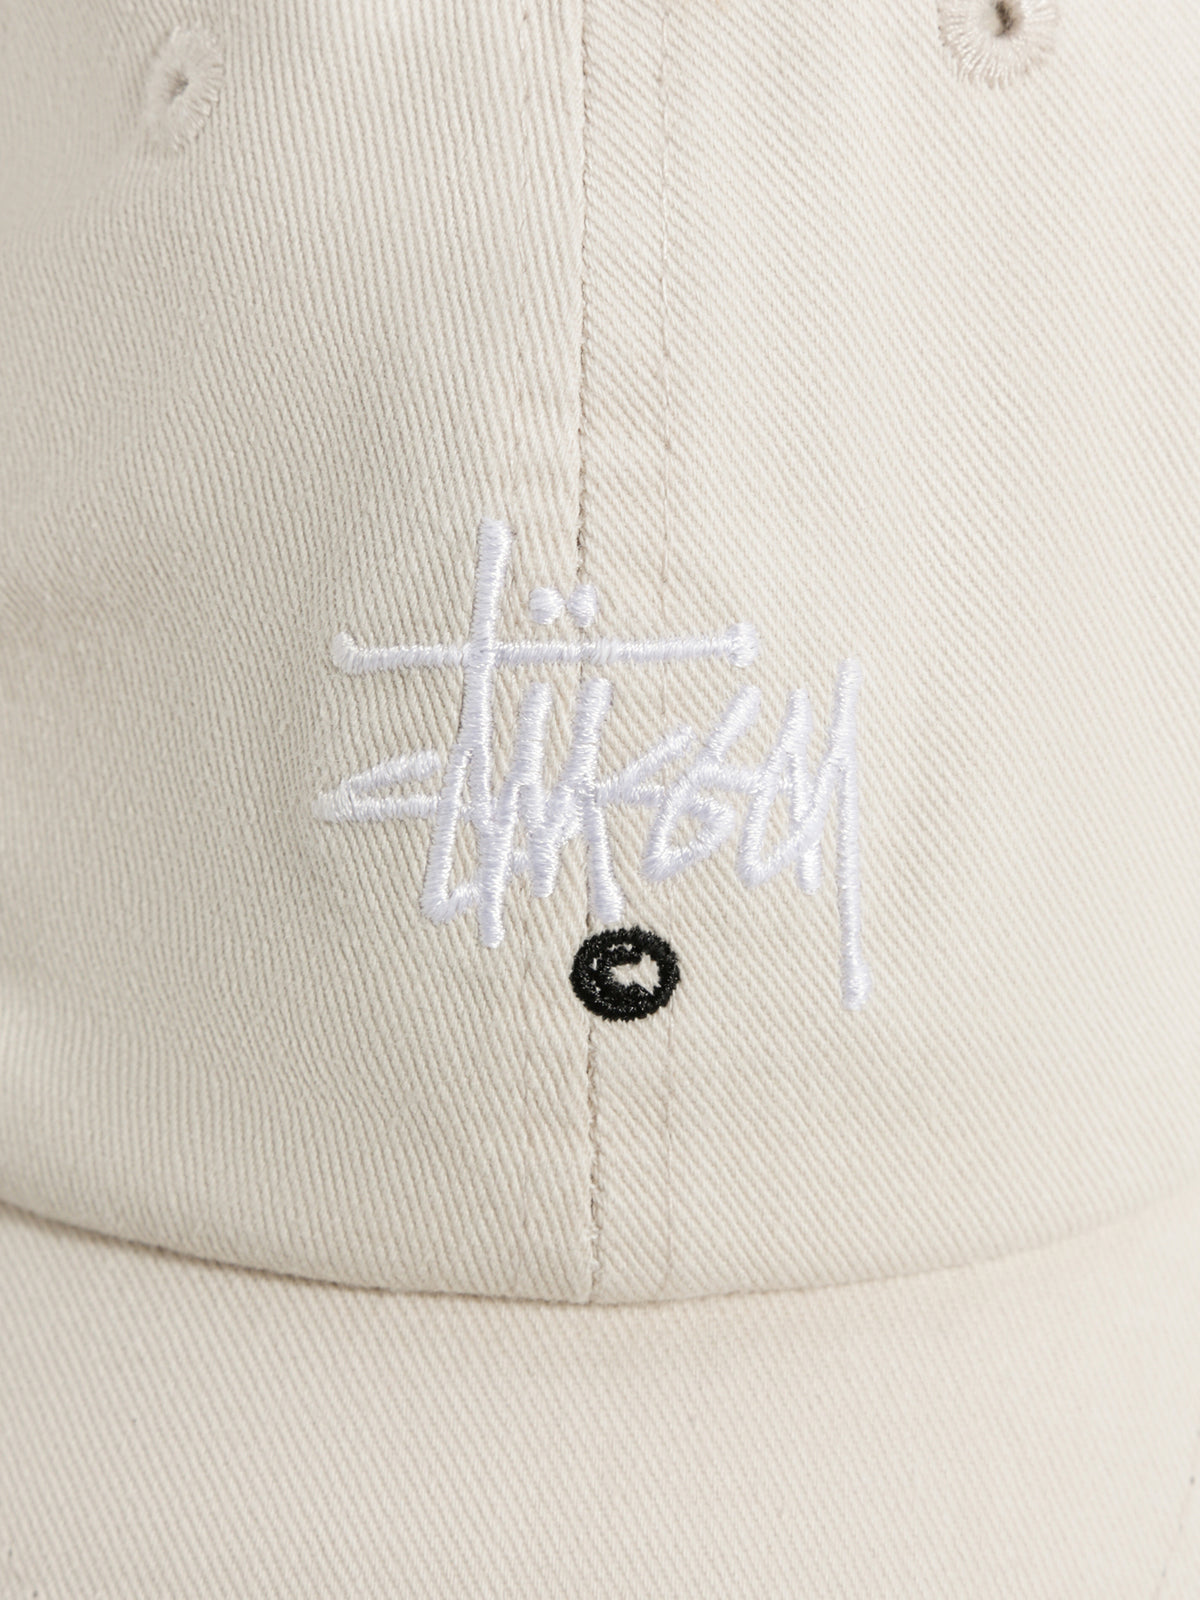 Graffiti Low Pro Cap in Sand